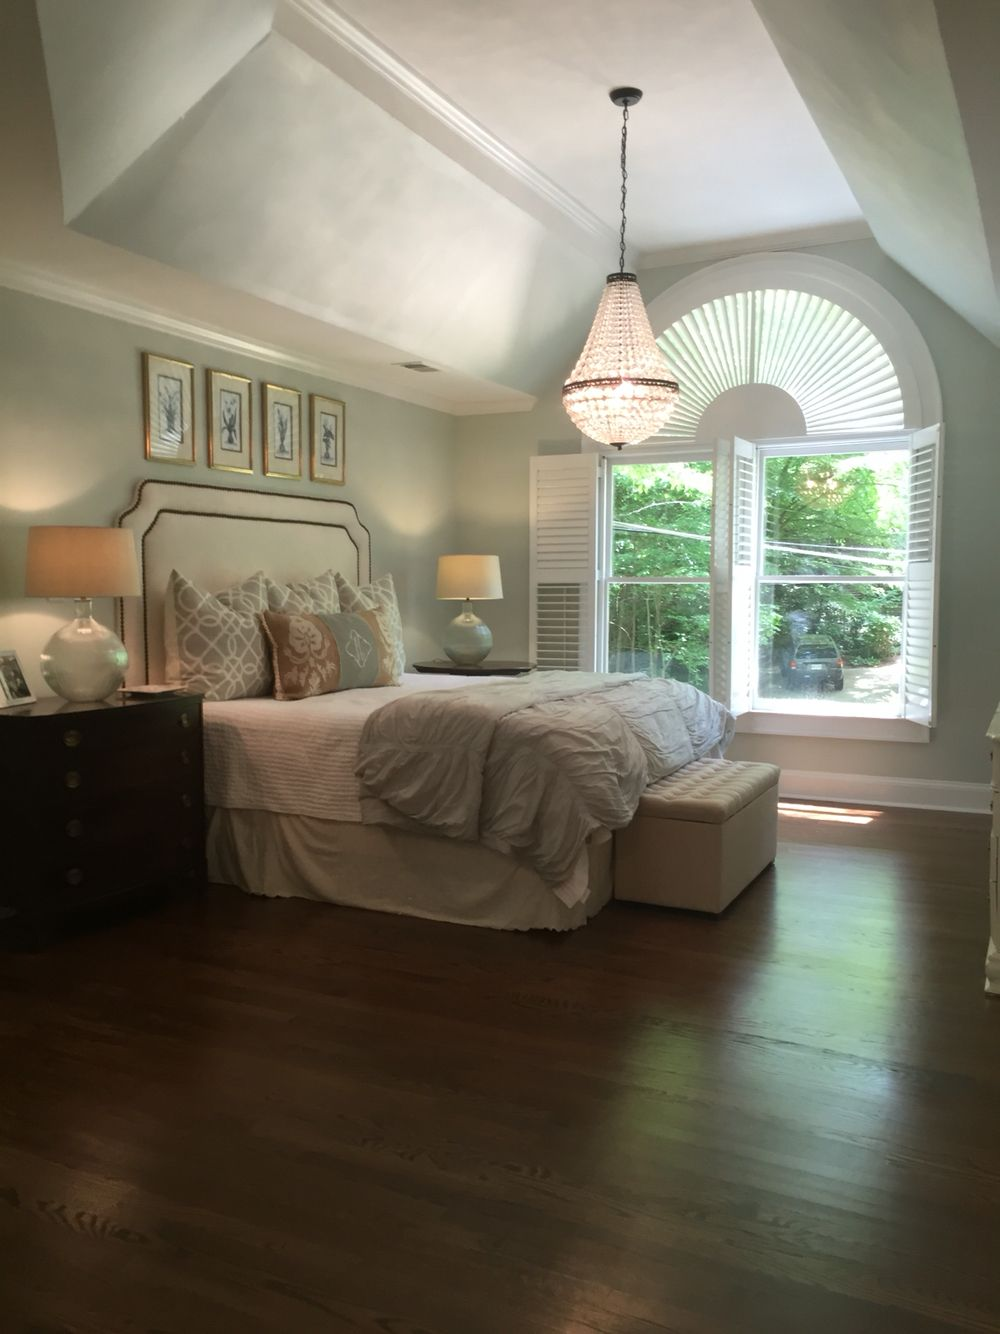 Best Master Bedroom With Trey Ceilings And Big Window Light 400 x 300